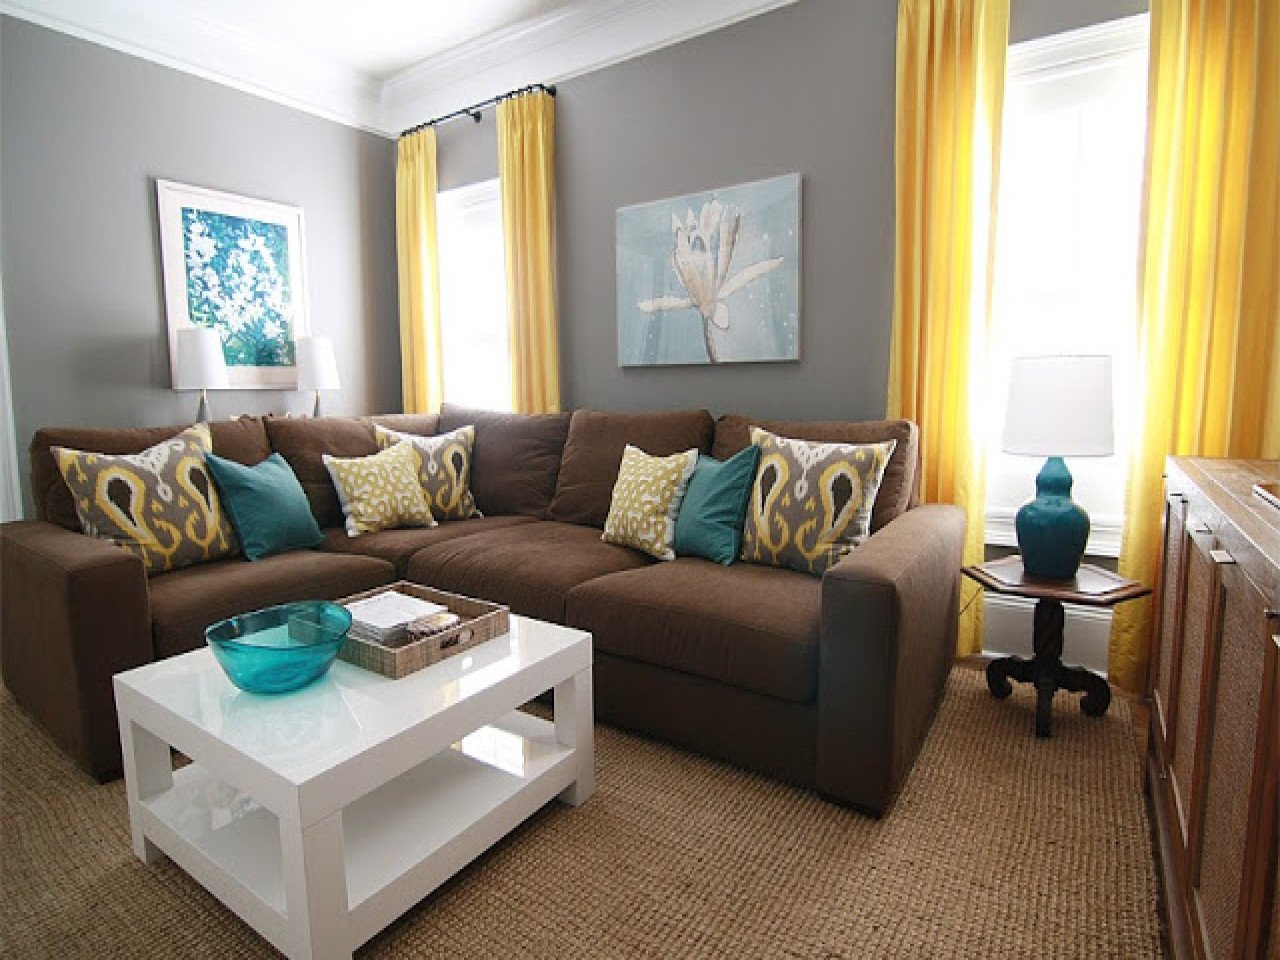 Teal Decor for Living Room Teal and Brown Living Room Decor Zion Star